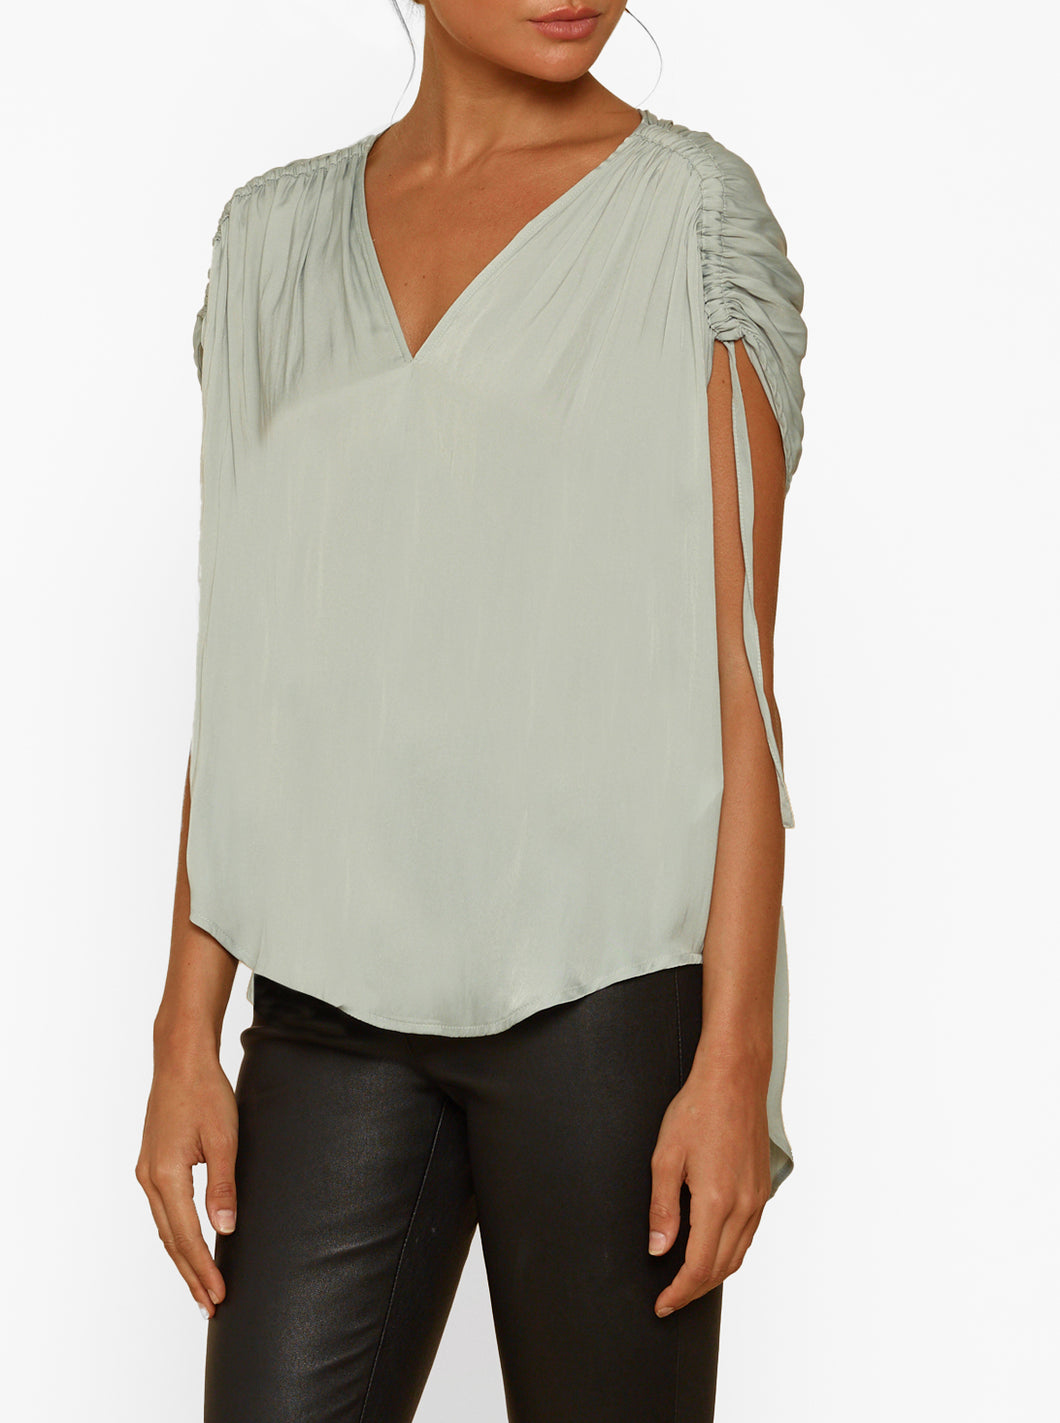 Look Twice Gathered Sleeve Top